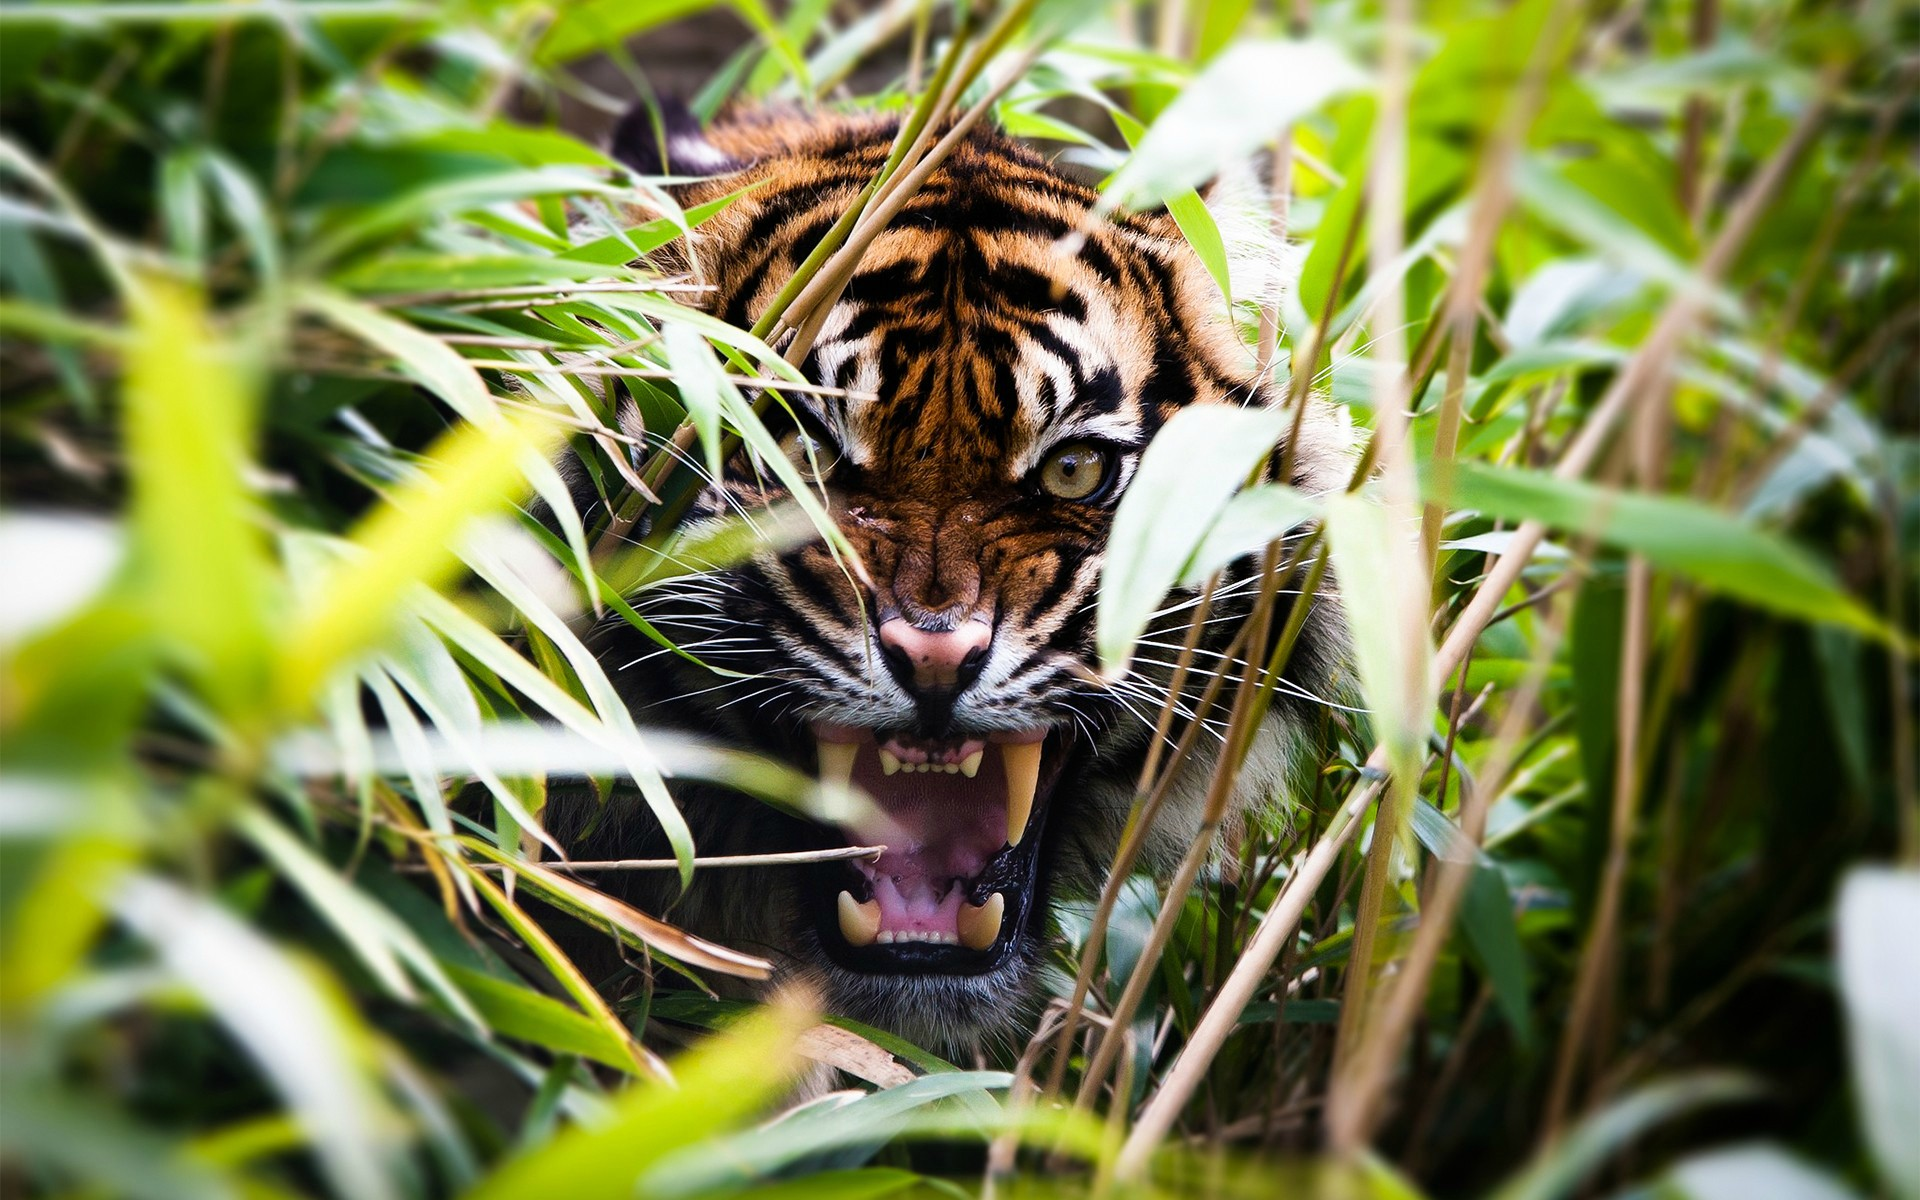 Tiger-Roar-HD-Wallpaper